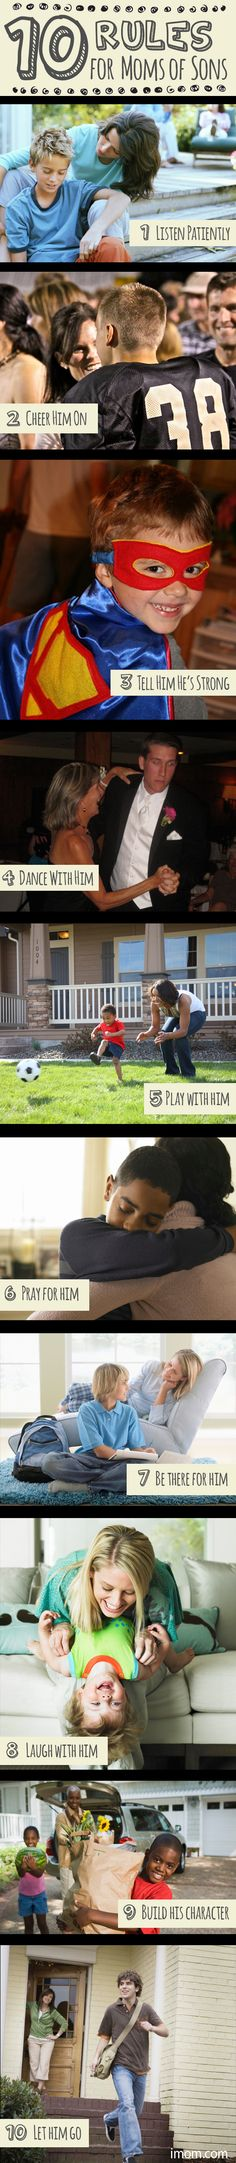 10 Rules for Moms of Sons